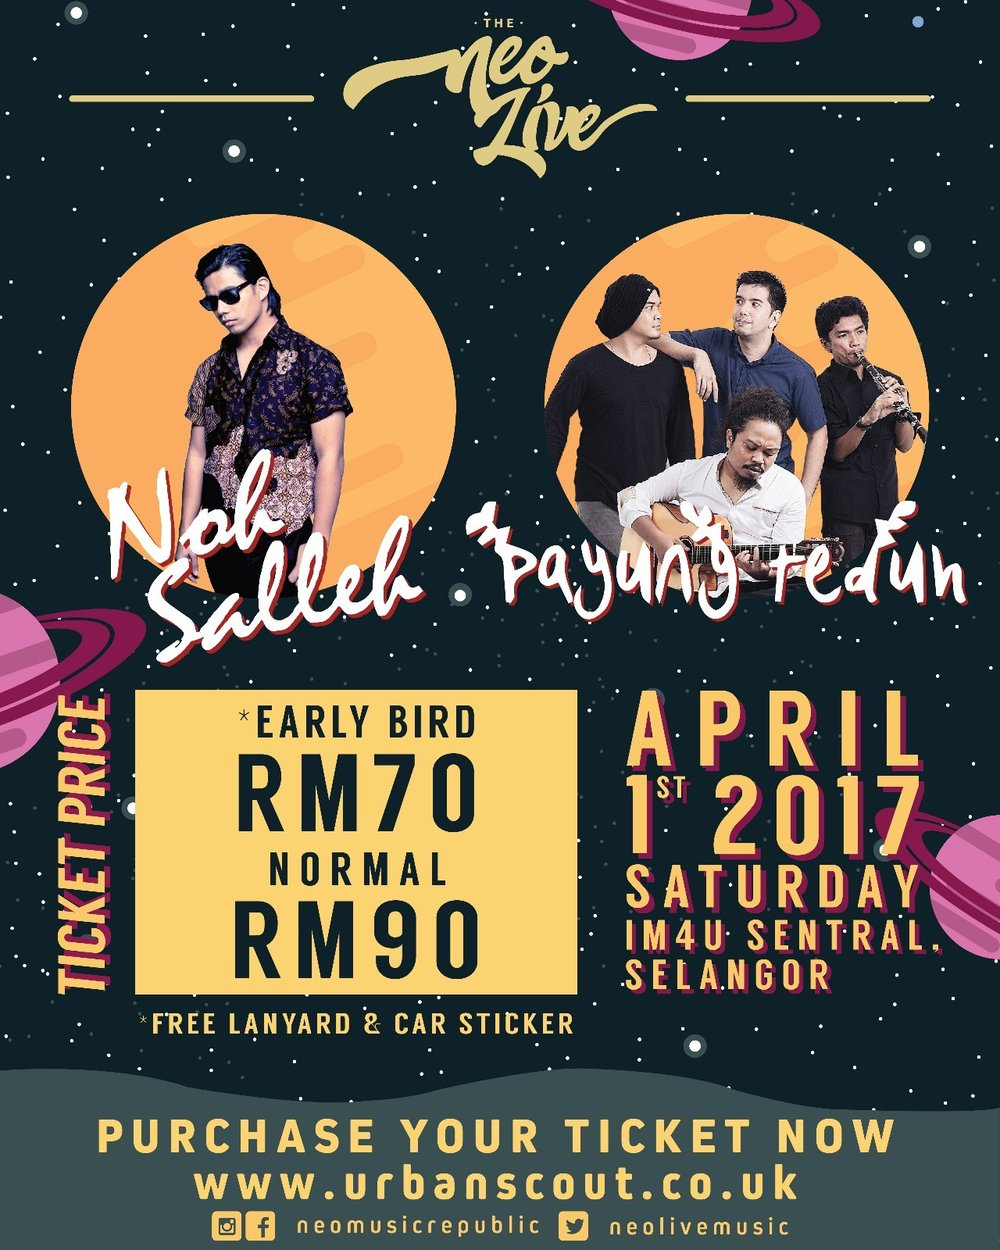 Our Upcoming Neo Live with Noh Salleh & Payung Teduh